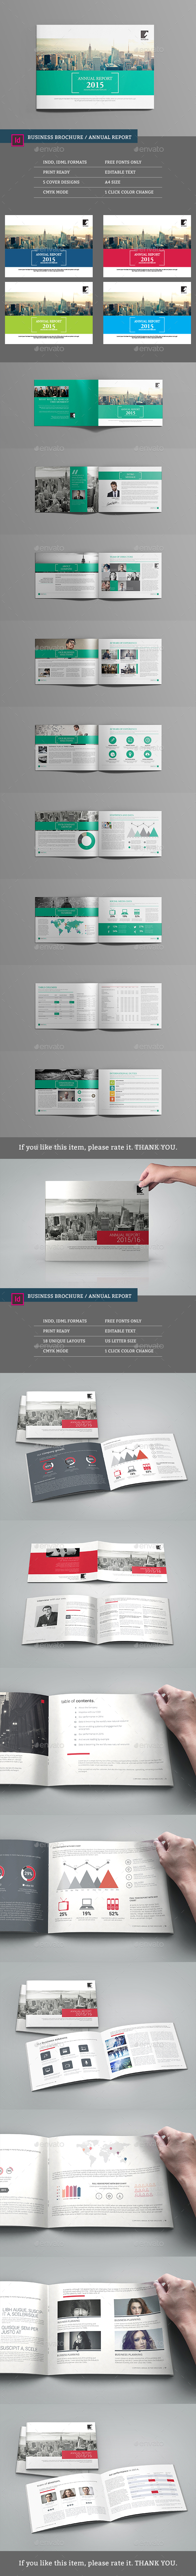 2-in-1 Brochure Bundle - Corporate Brochures